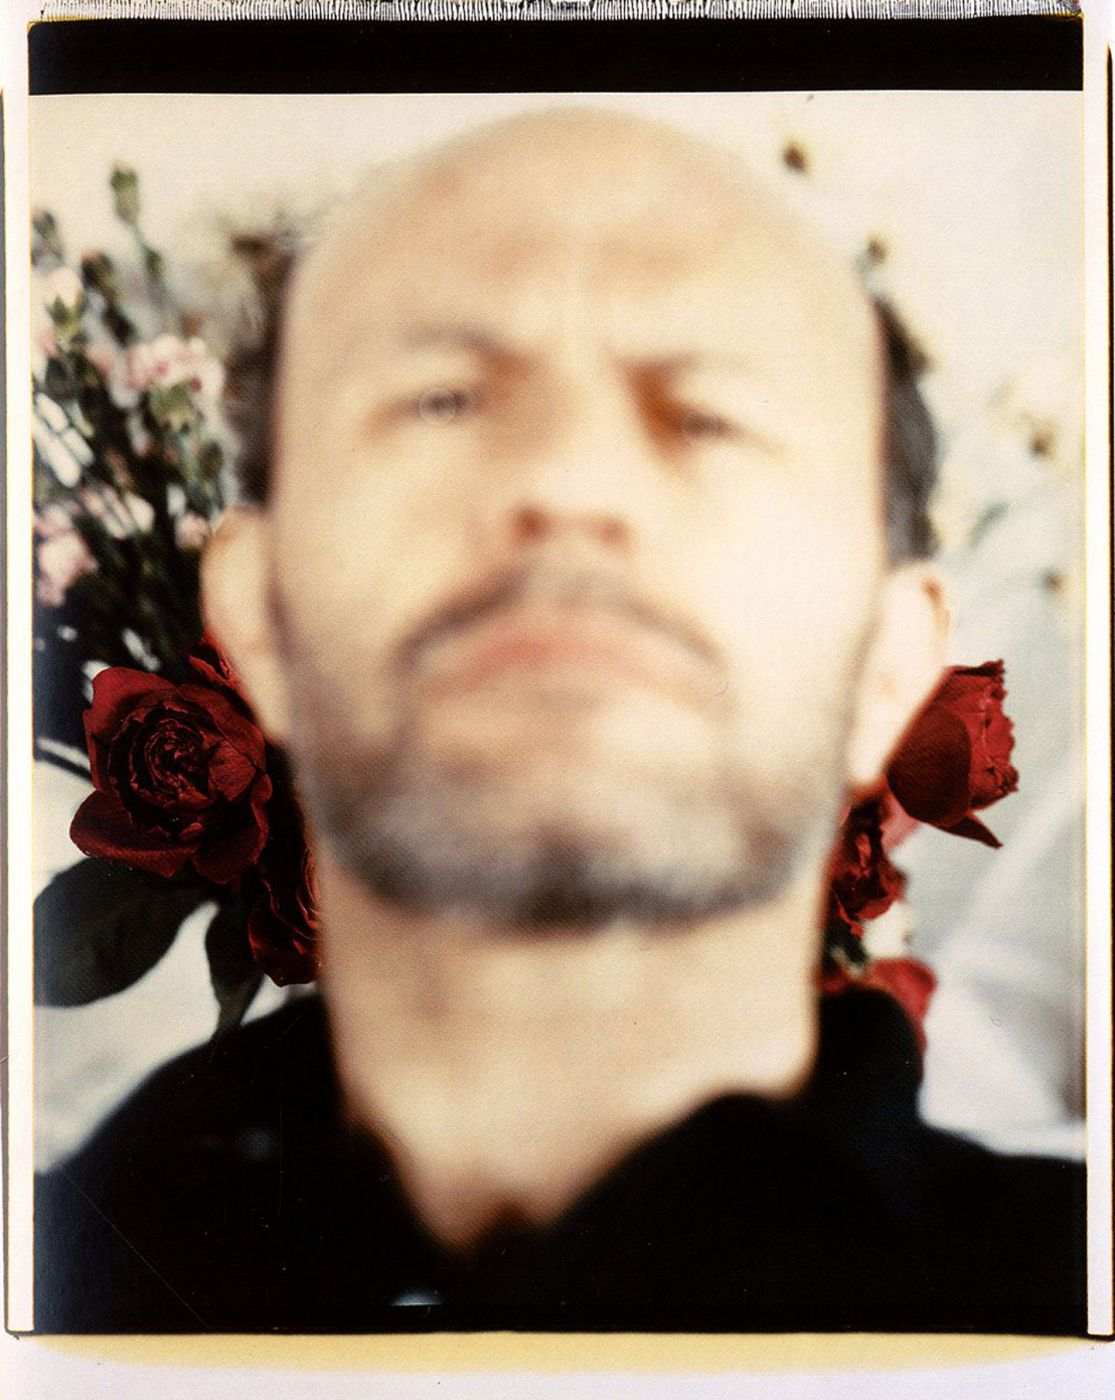 Jim Dine: The Photographs, So Far (Four Volume Set) [SIGNED] [IMPERFECT]